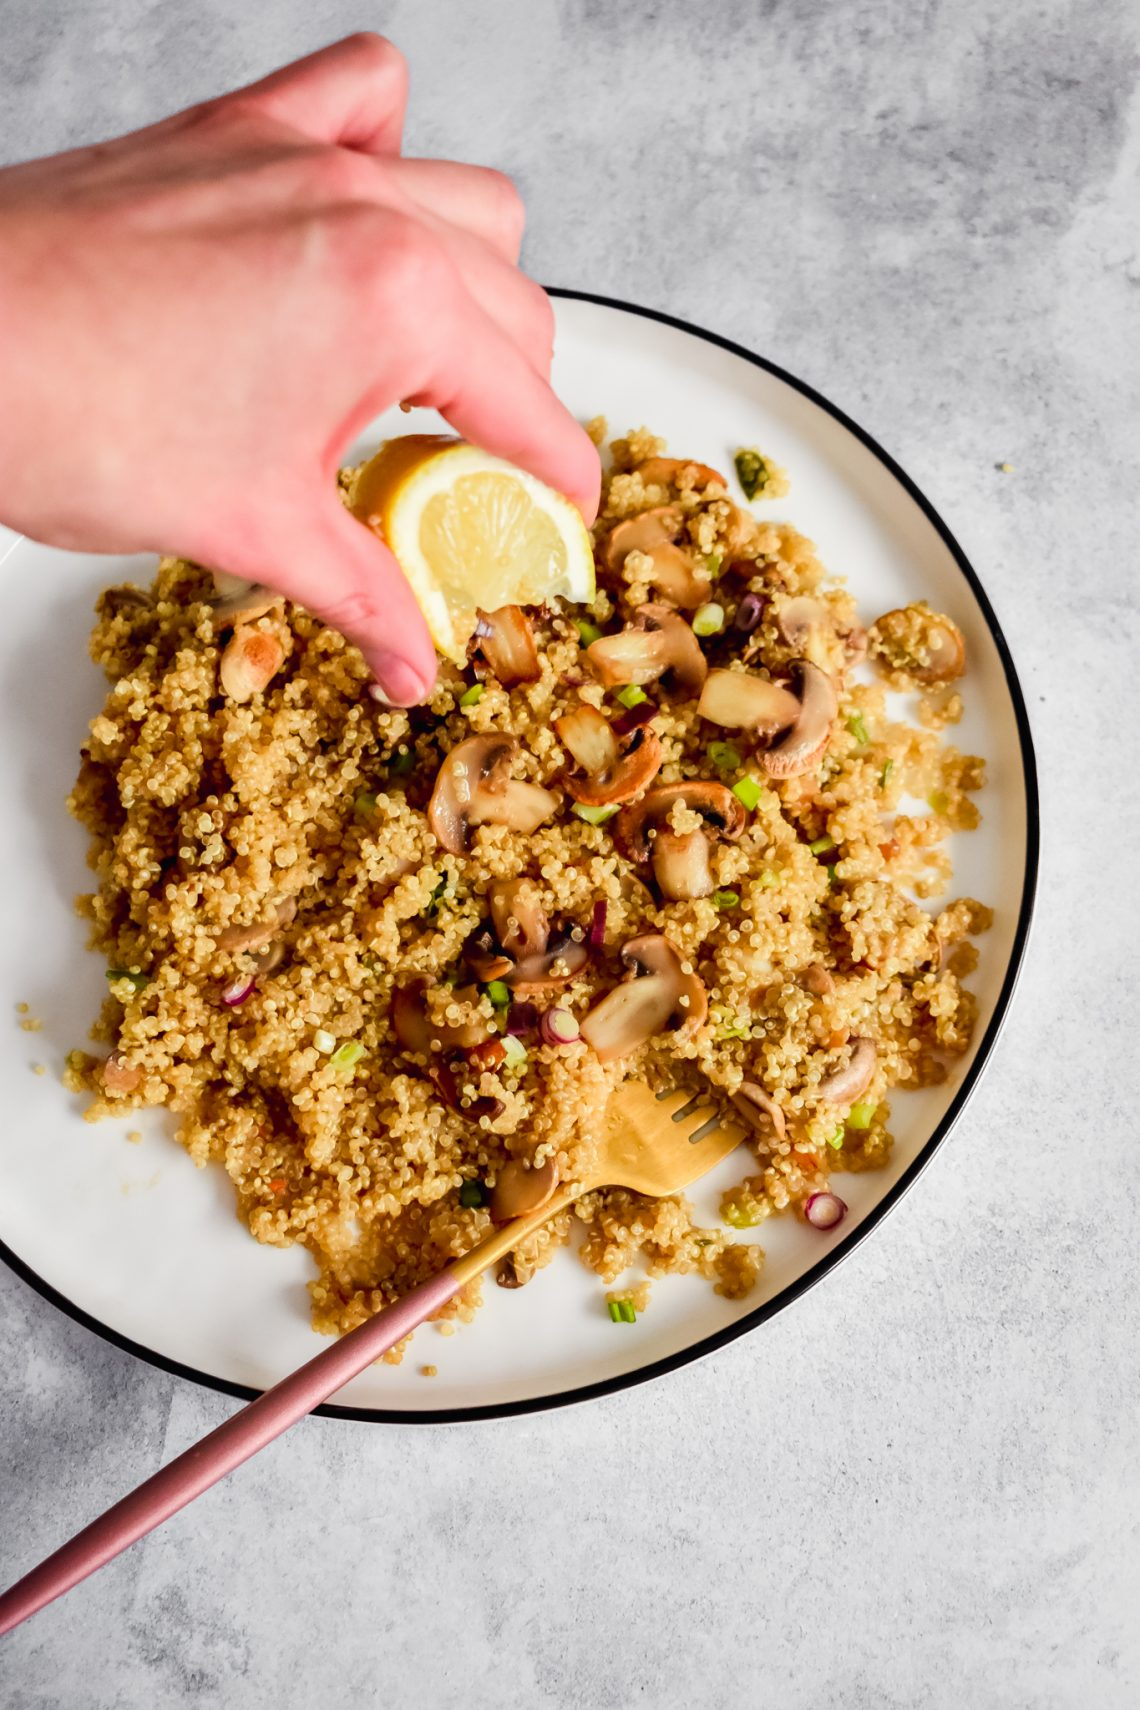 Make Toasty Mushrooms & Quinoa